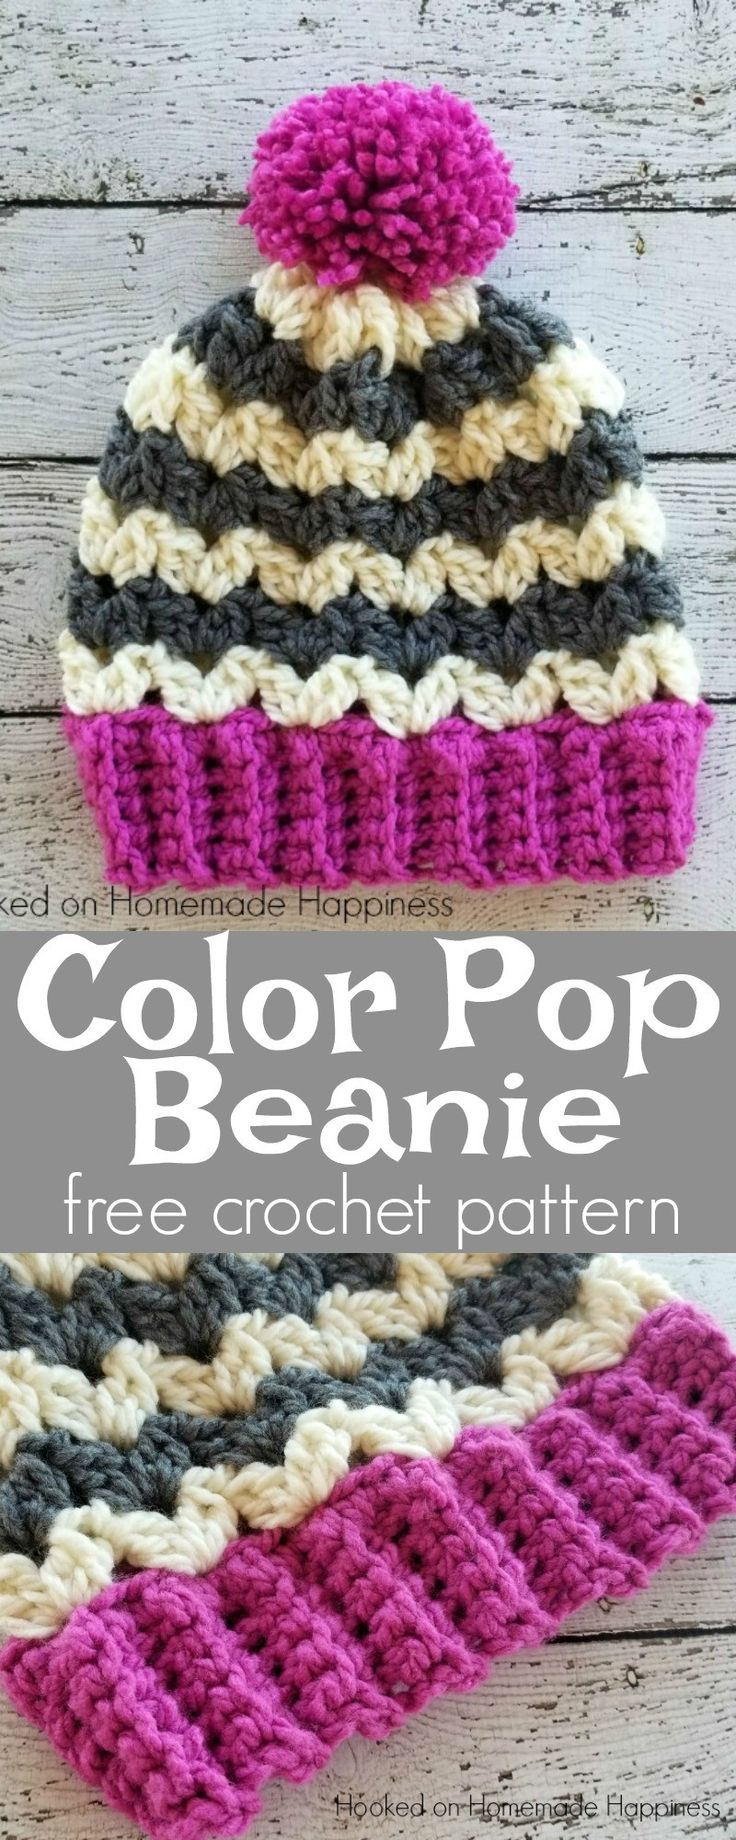 Color Pop Beanie